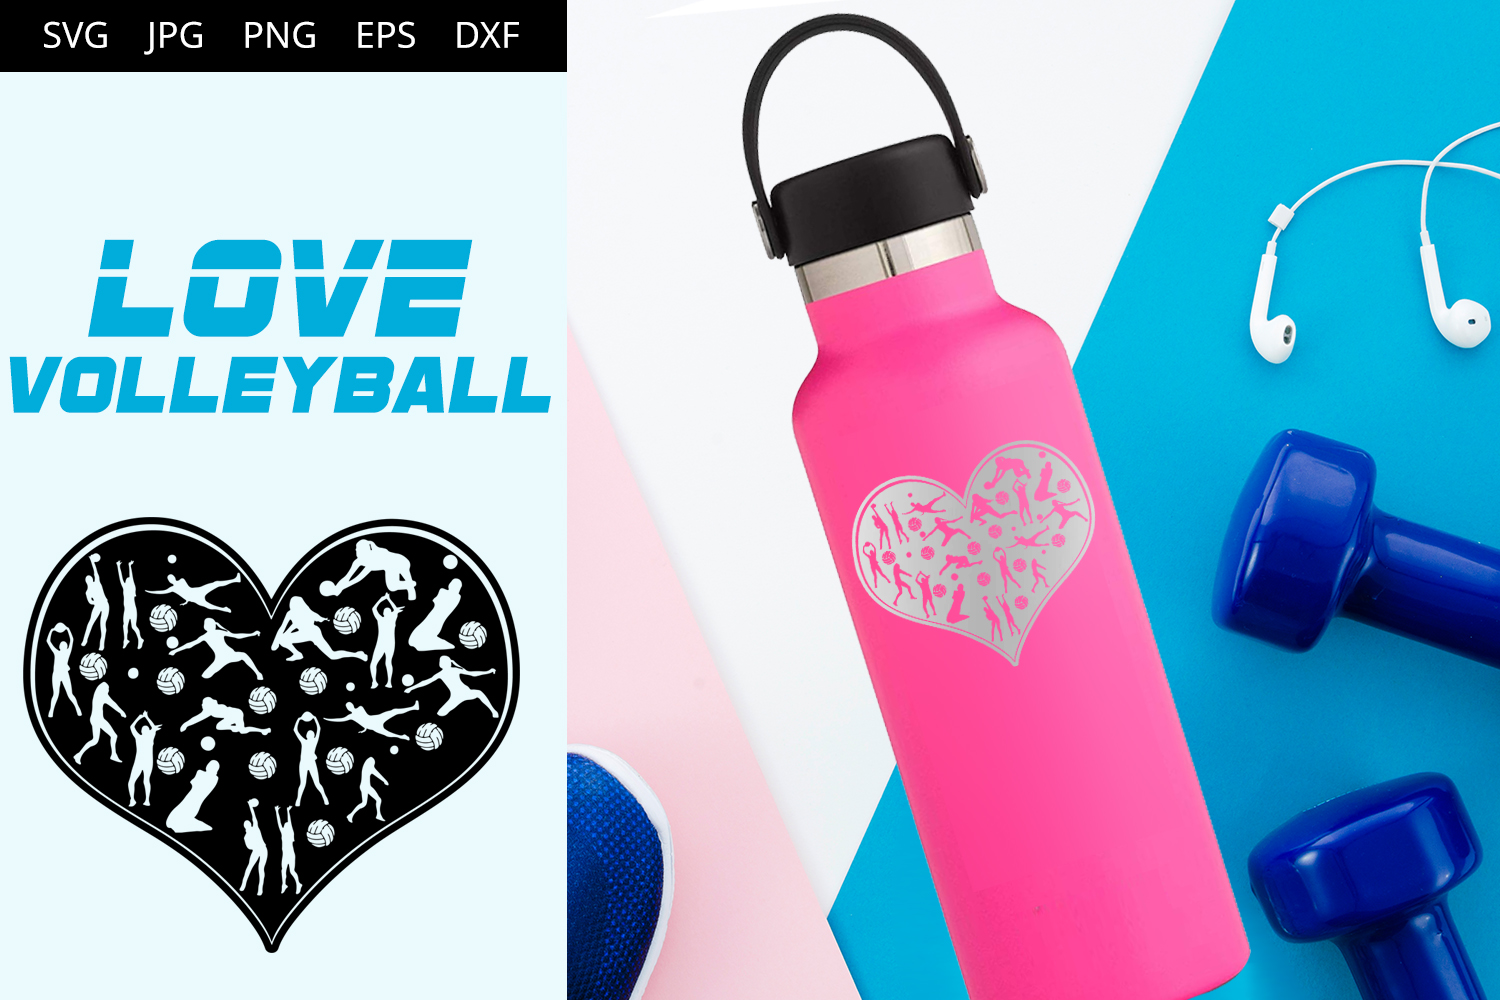 Download Free Love Volleyball Graphic By Thesilhouettequeenshop Creative Fabrica for Cricut Explore, Silhouette and other cutting machines.